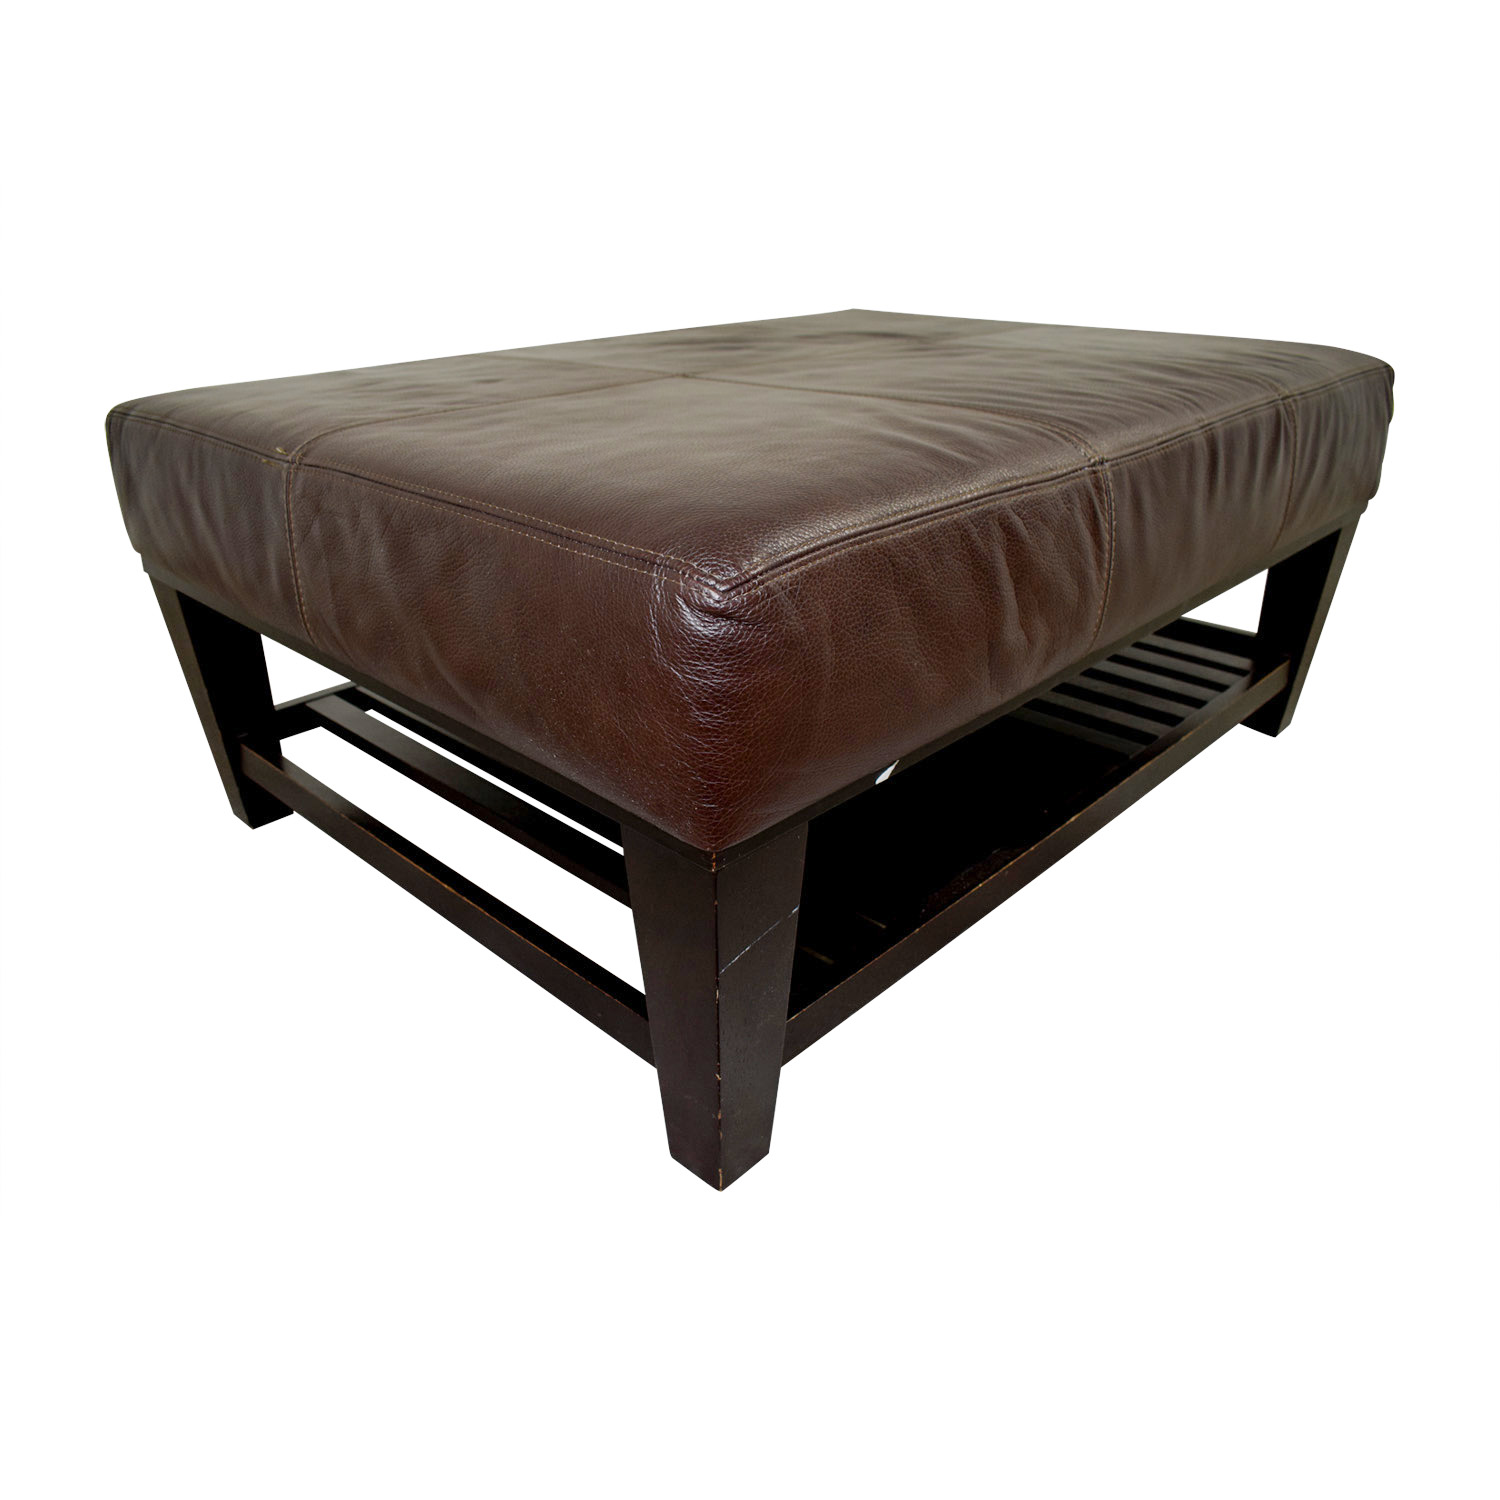 Surprising 90 Off Rowe Furniture Rowe Leather Ottoman Chairs Caraccident5 Cool Chair Designs And Ideas Caraccident5Info